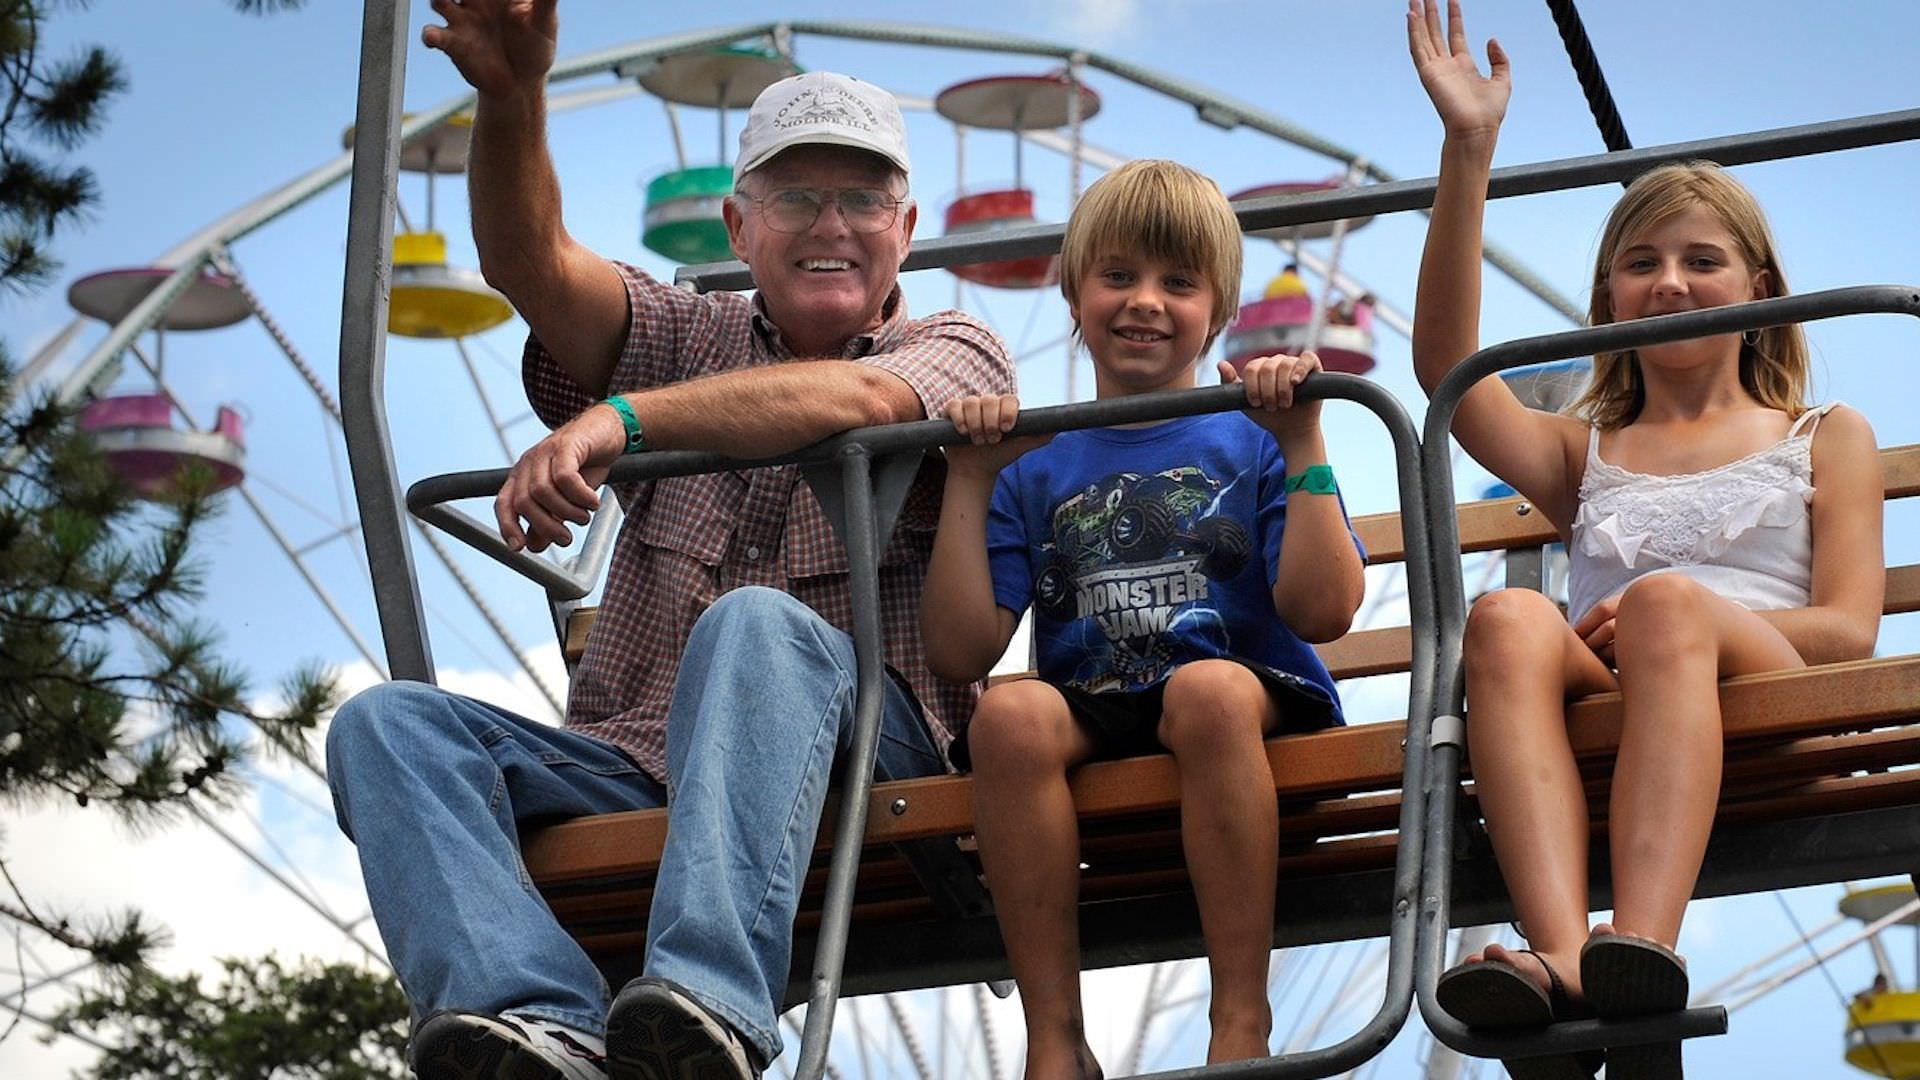 Photo of grandfather and grandson on a ride